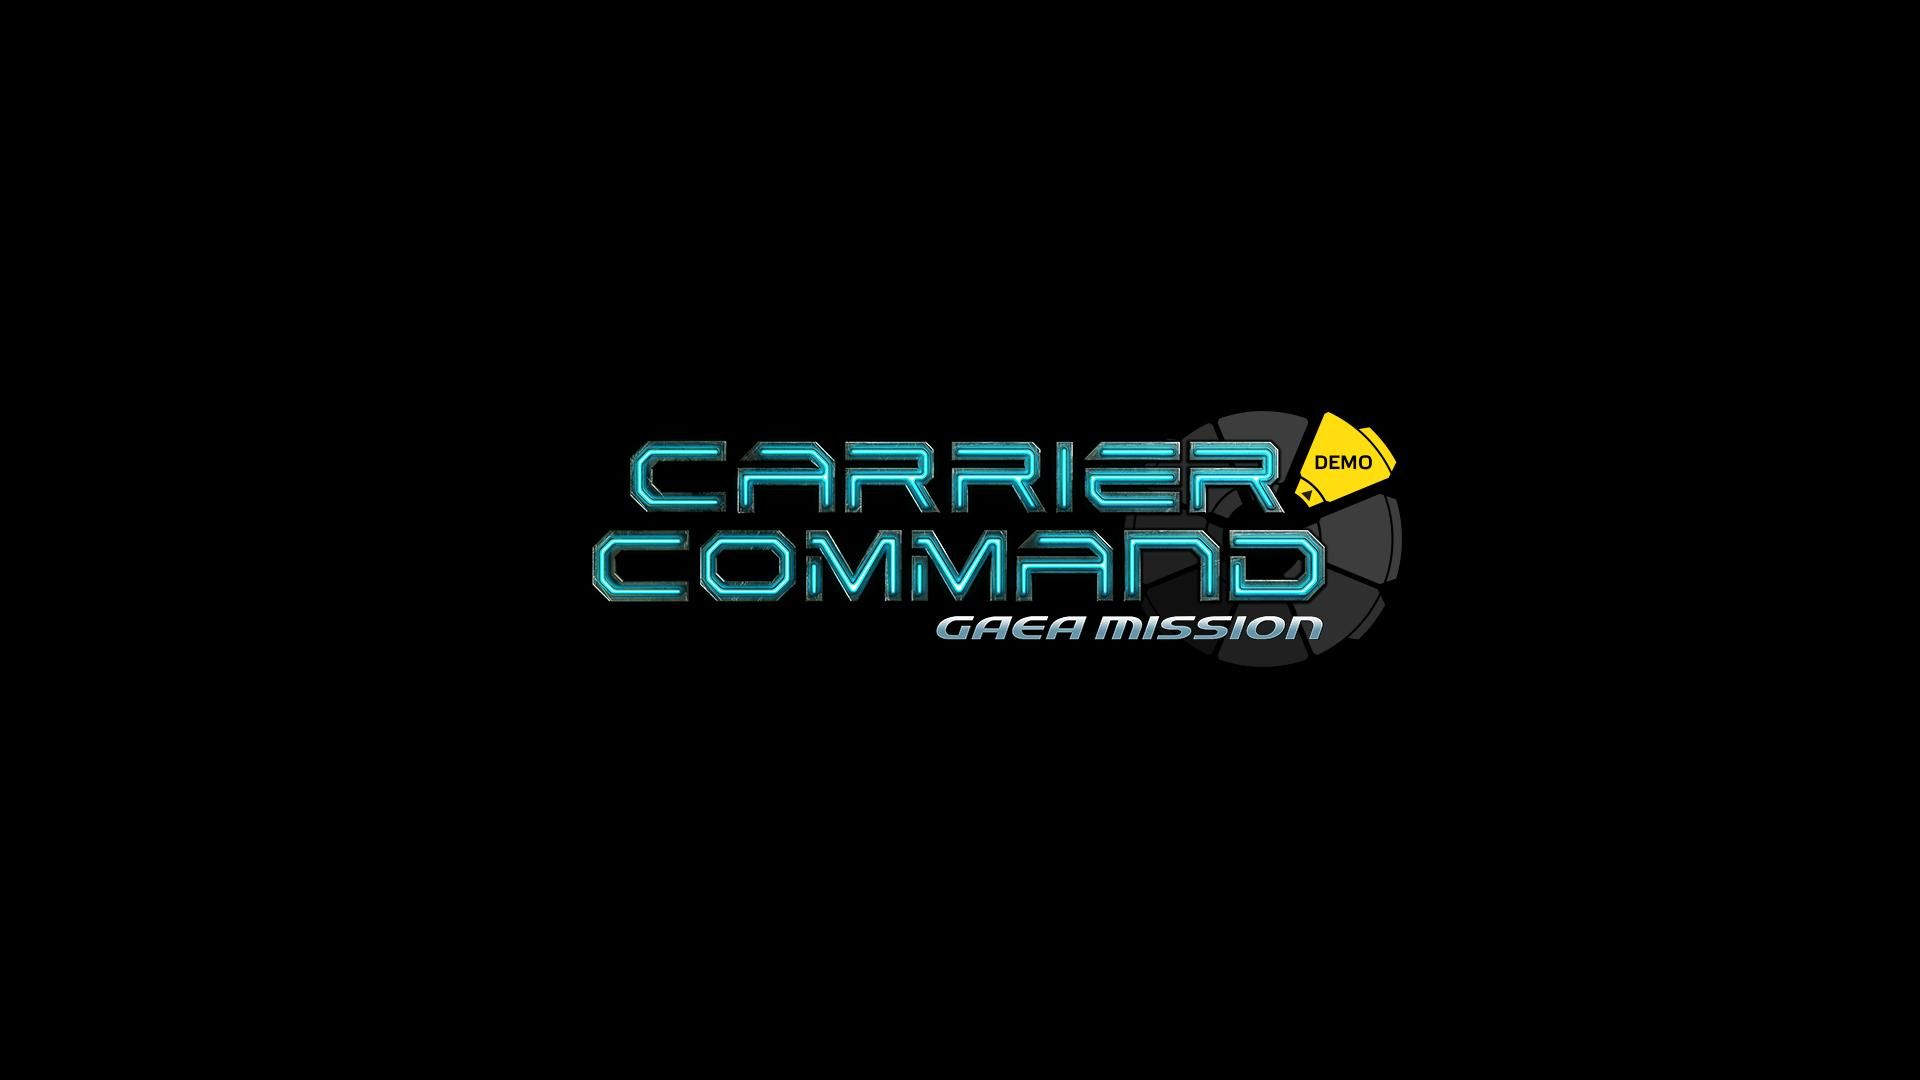 Carrier Command: Gaea Mission (Demo Version)